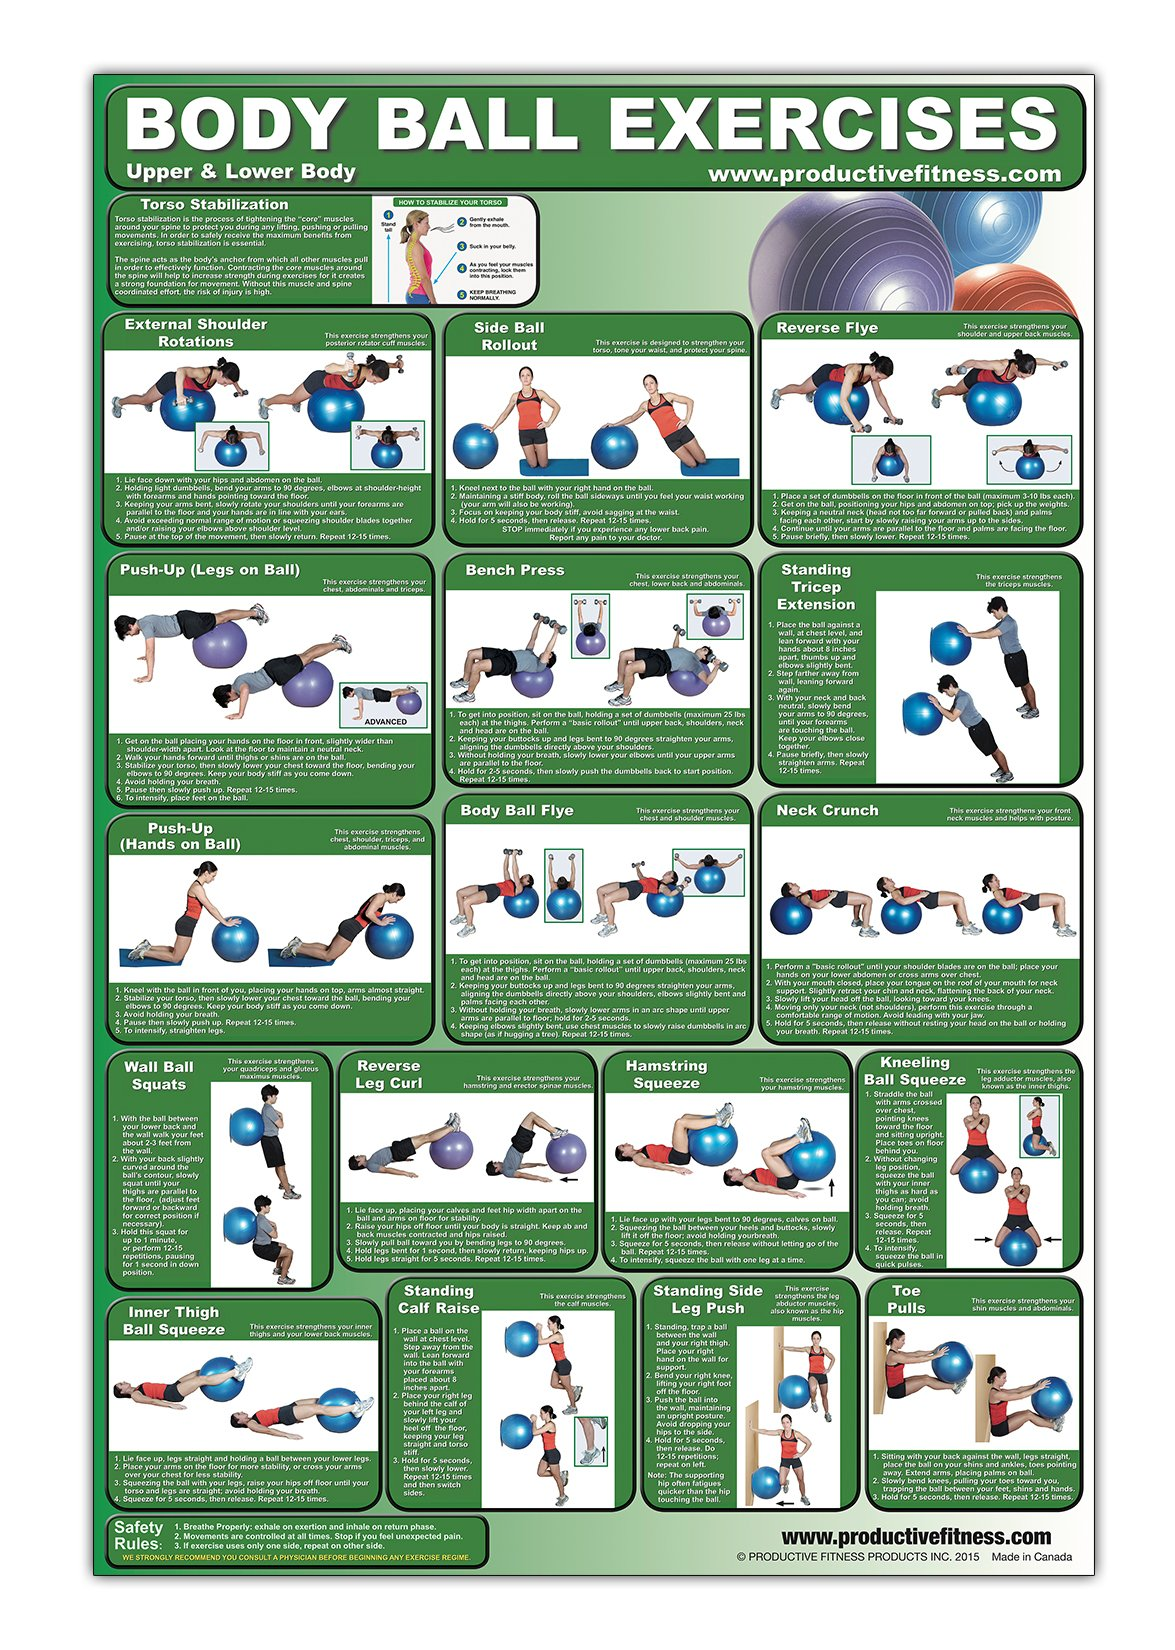 Download Laminated Fitness Ball Poster - Upper & Lower Body Exercises - Created by University Accredited Fitness Experts - Stability Ball Exercises for Legs ... - Tone and Tighten Arms, Chest and Back PDF